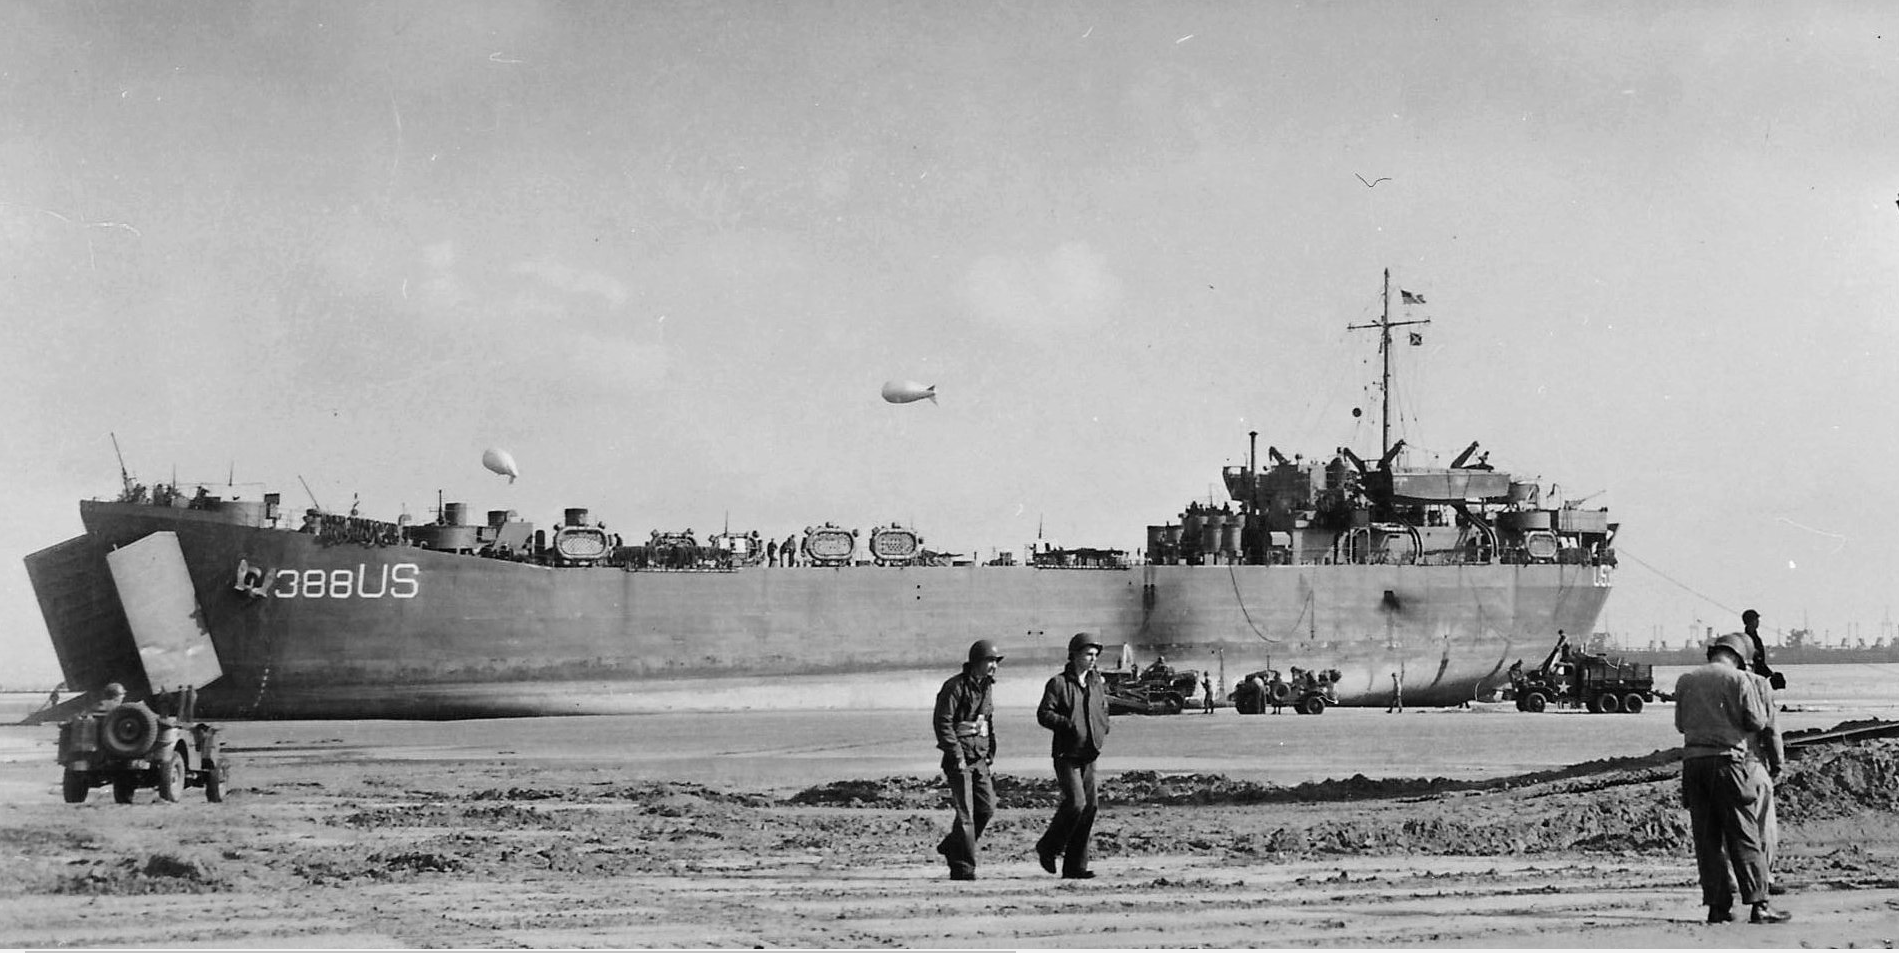 LST 388 on Normandy Beach